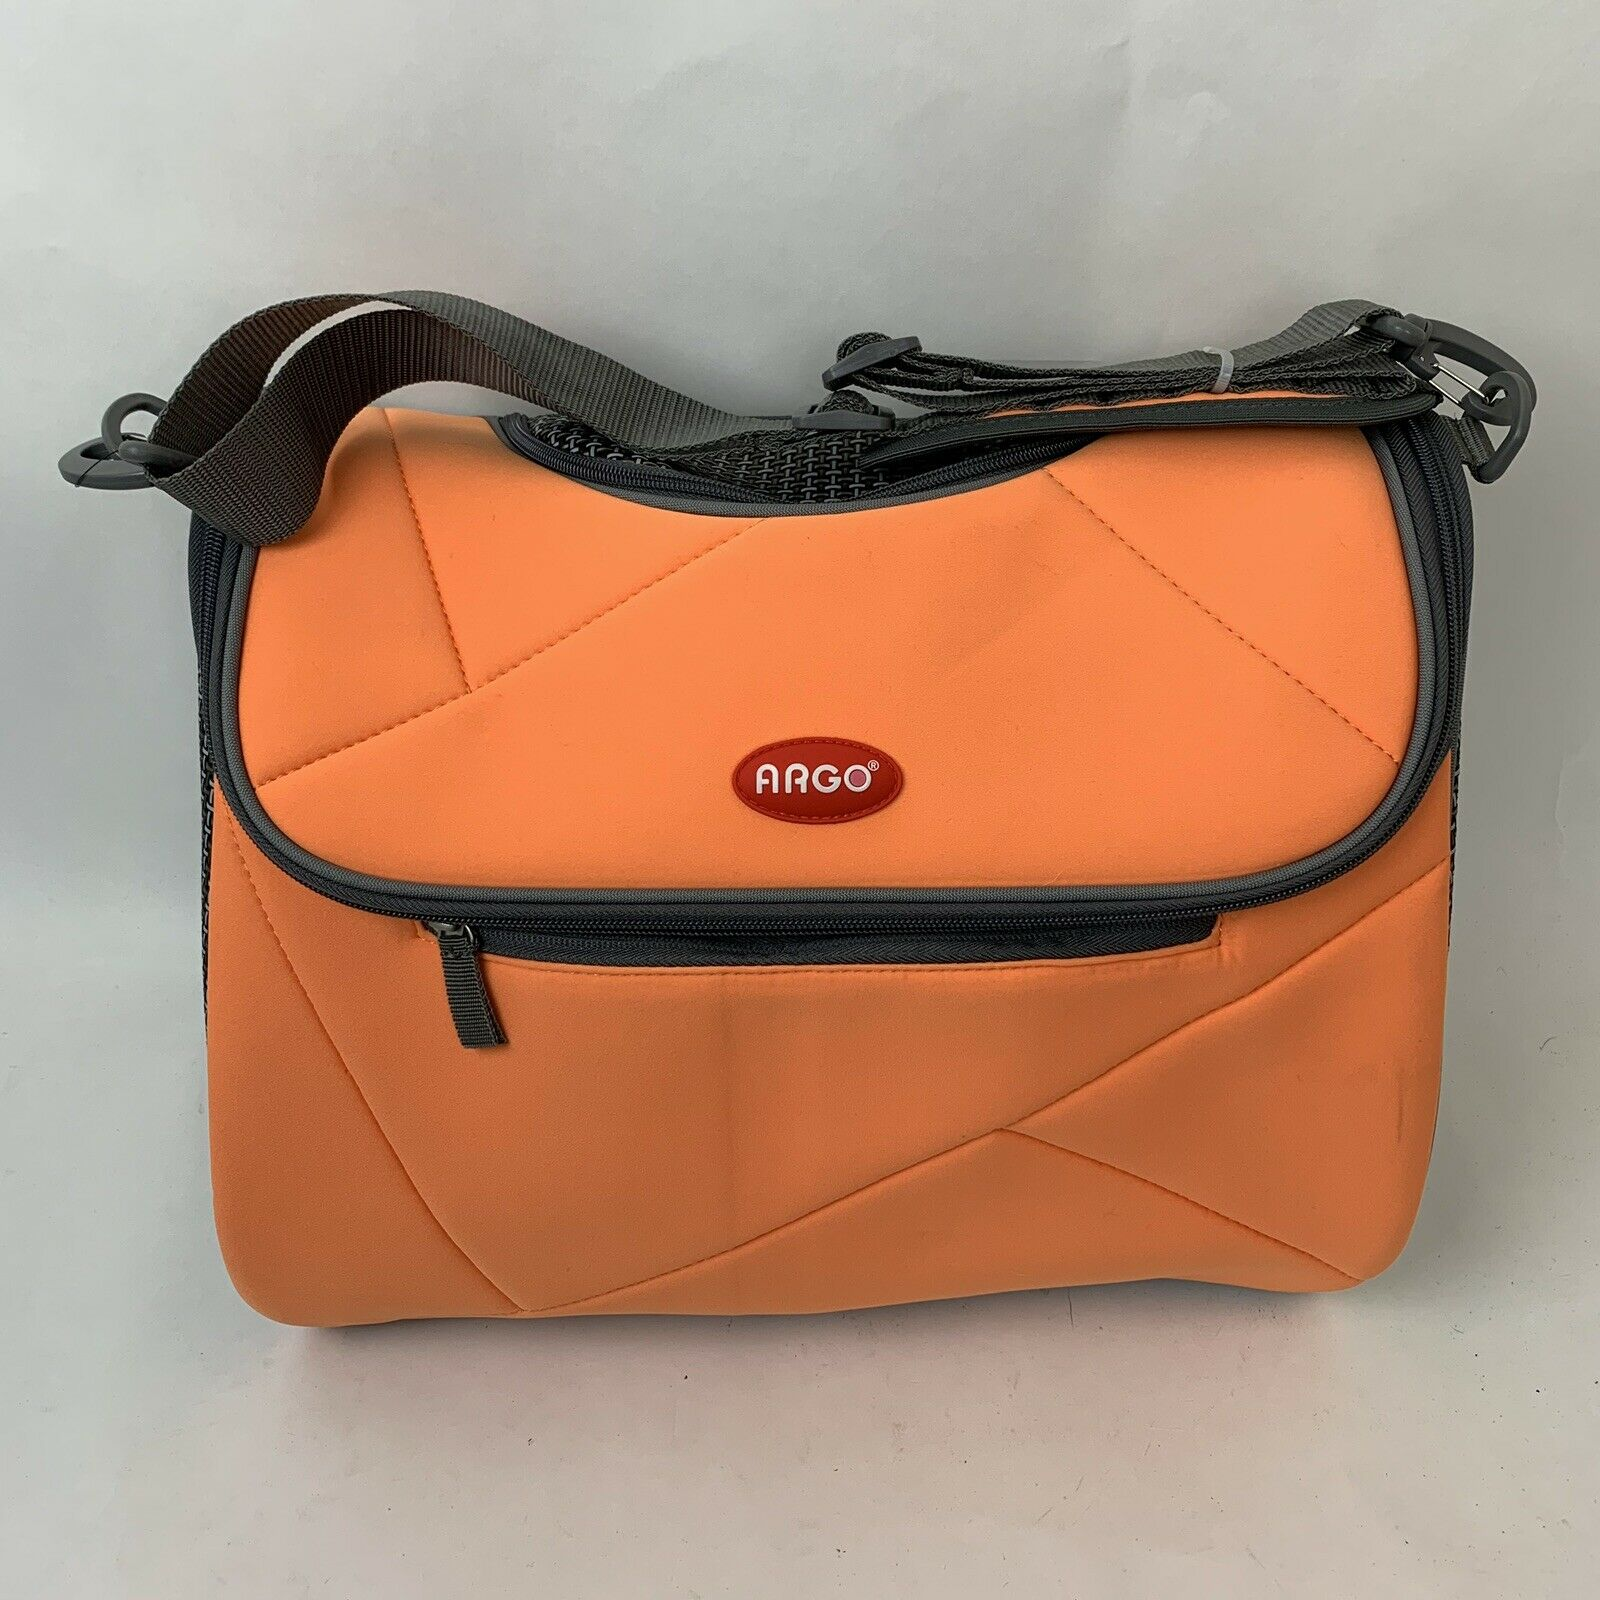 Teafco Argo Avion Airline Approved Pet Carrier  Orange